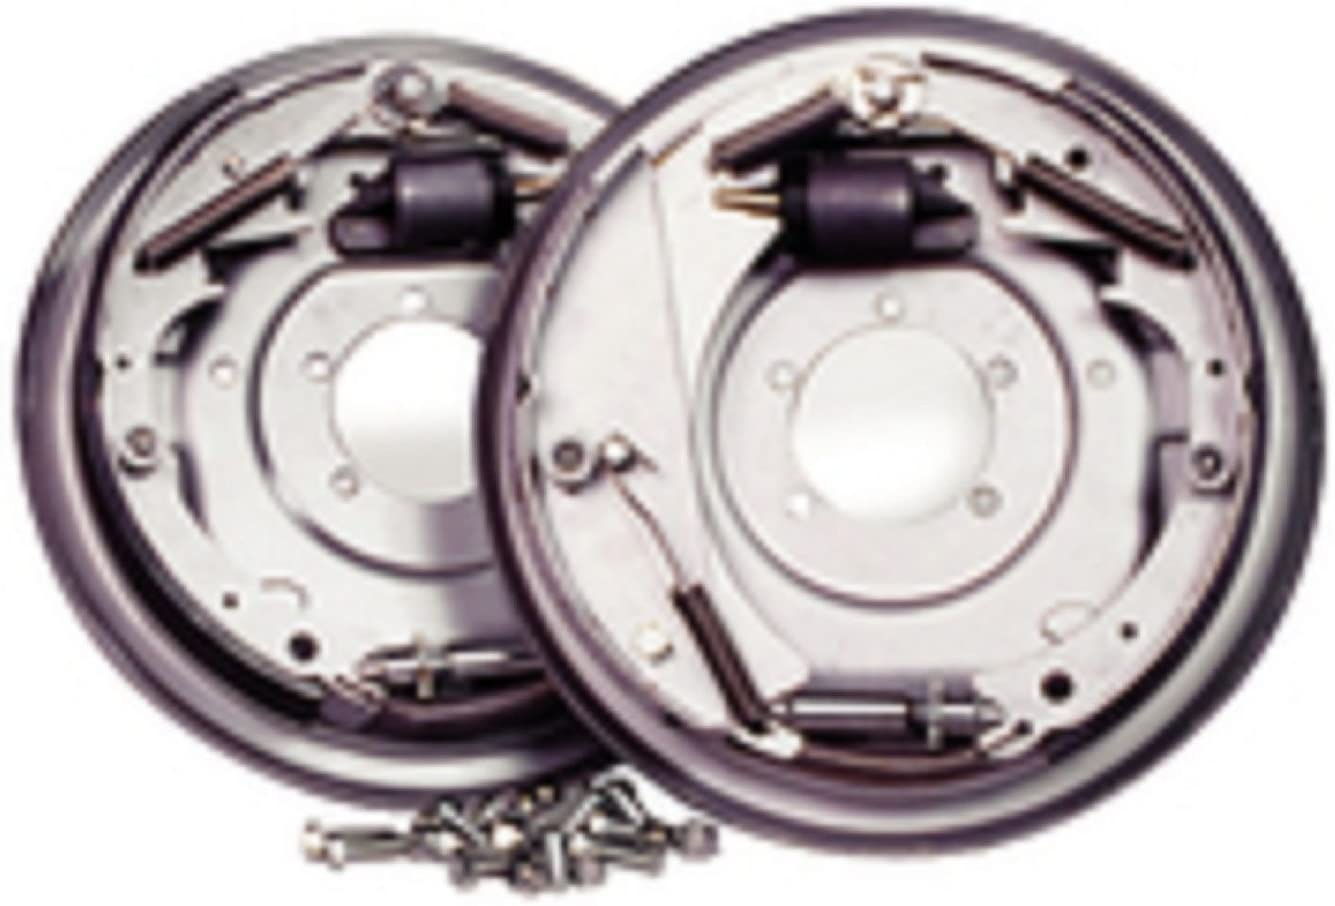 Boating Accessories New Max 65% OFF TIEDOWN Engineering Bra Sale Special Price Drum GALV 12IN X